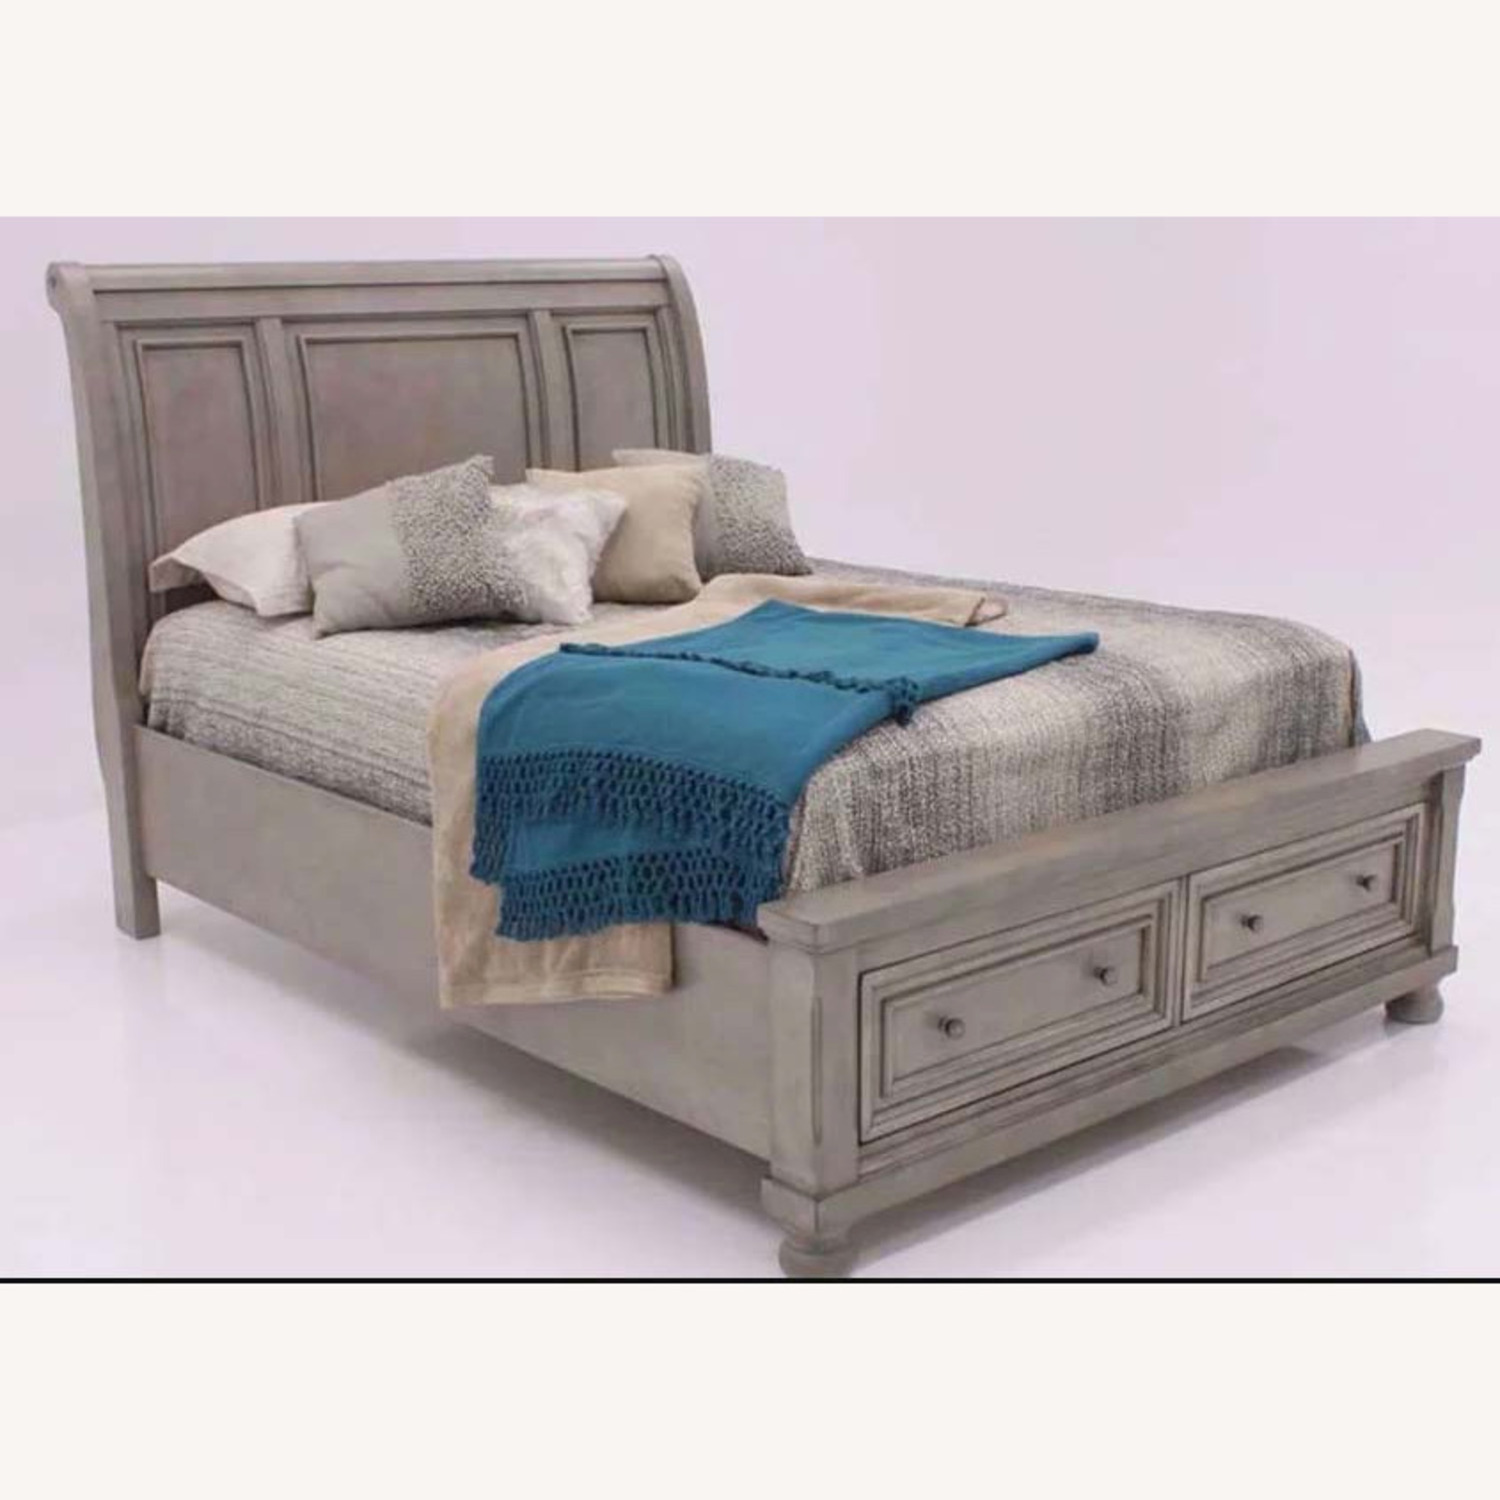 Ashley Furniture King Sleigh Bed with Storage - image-12